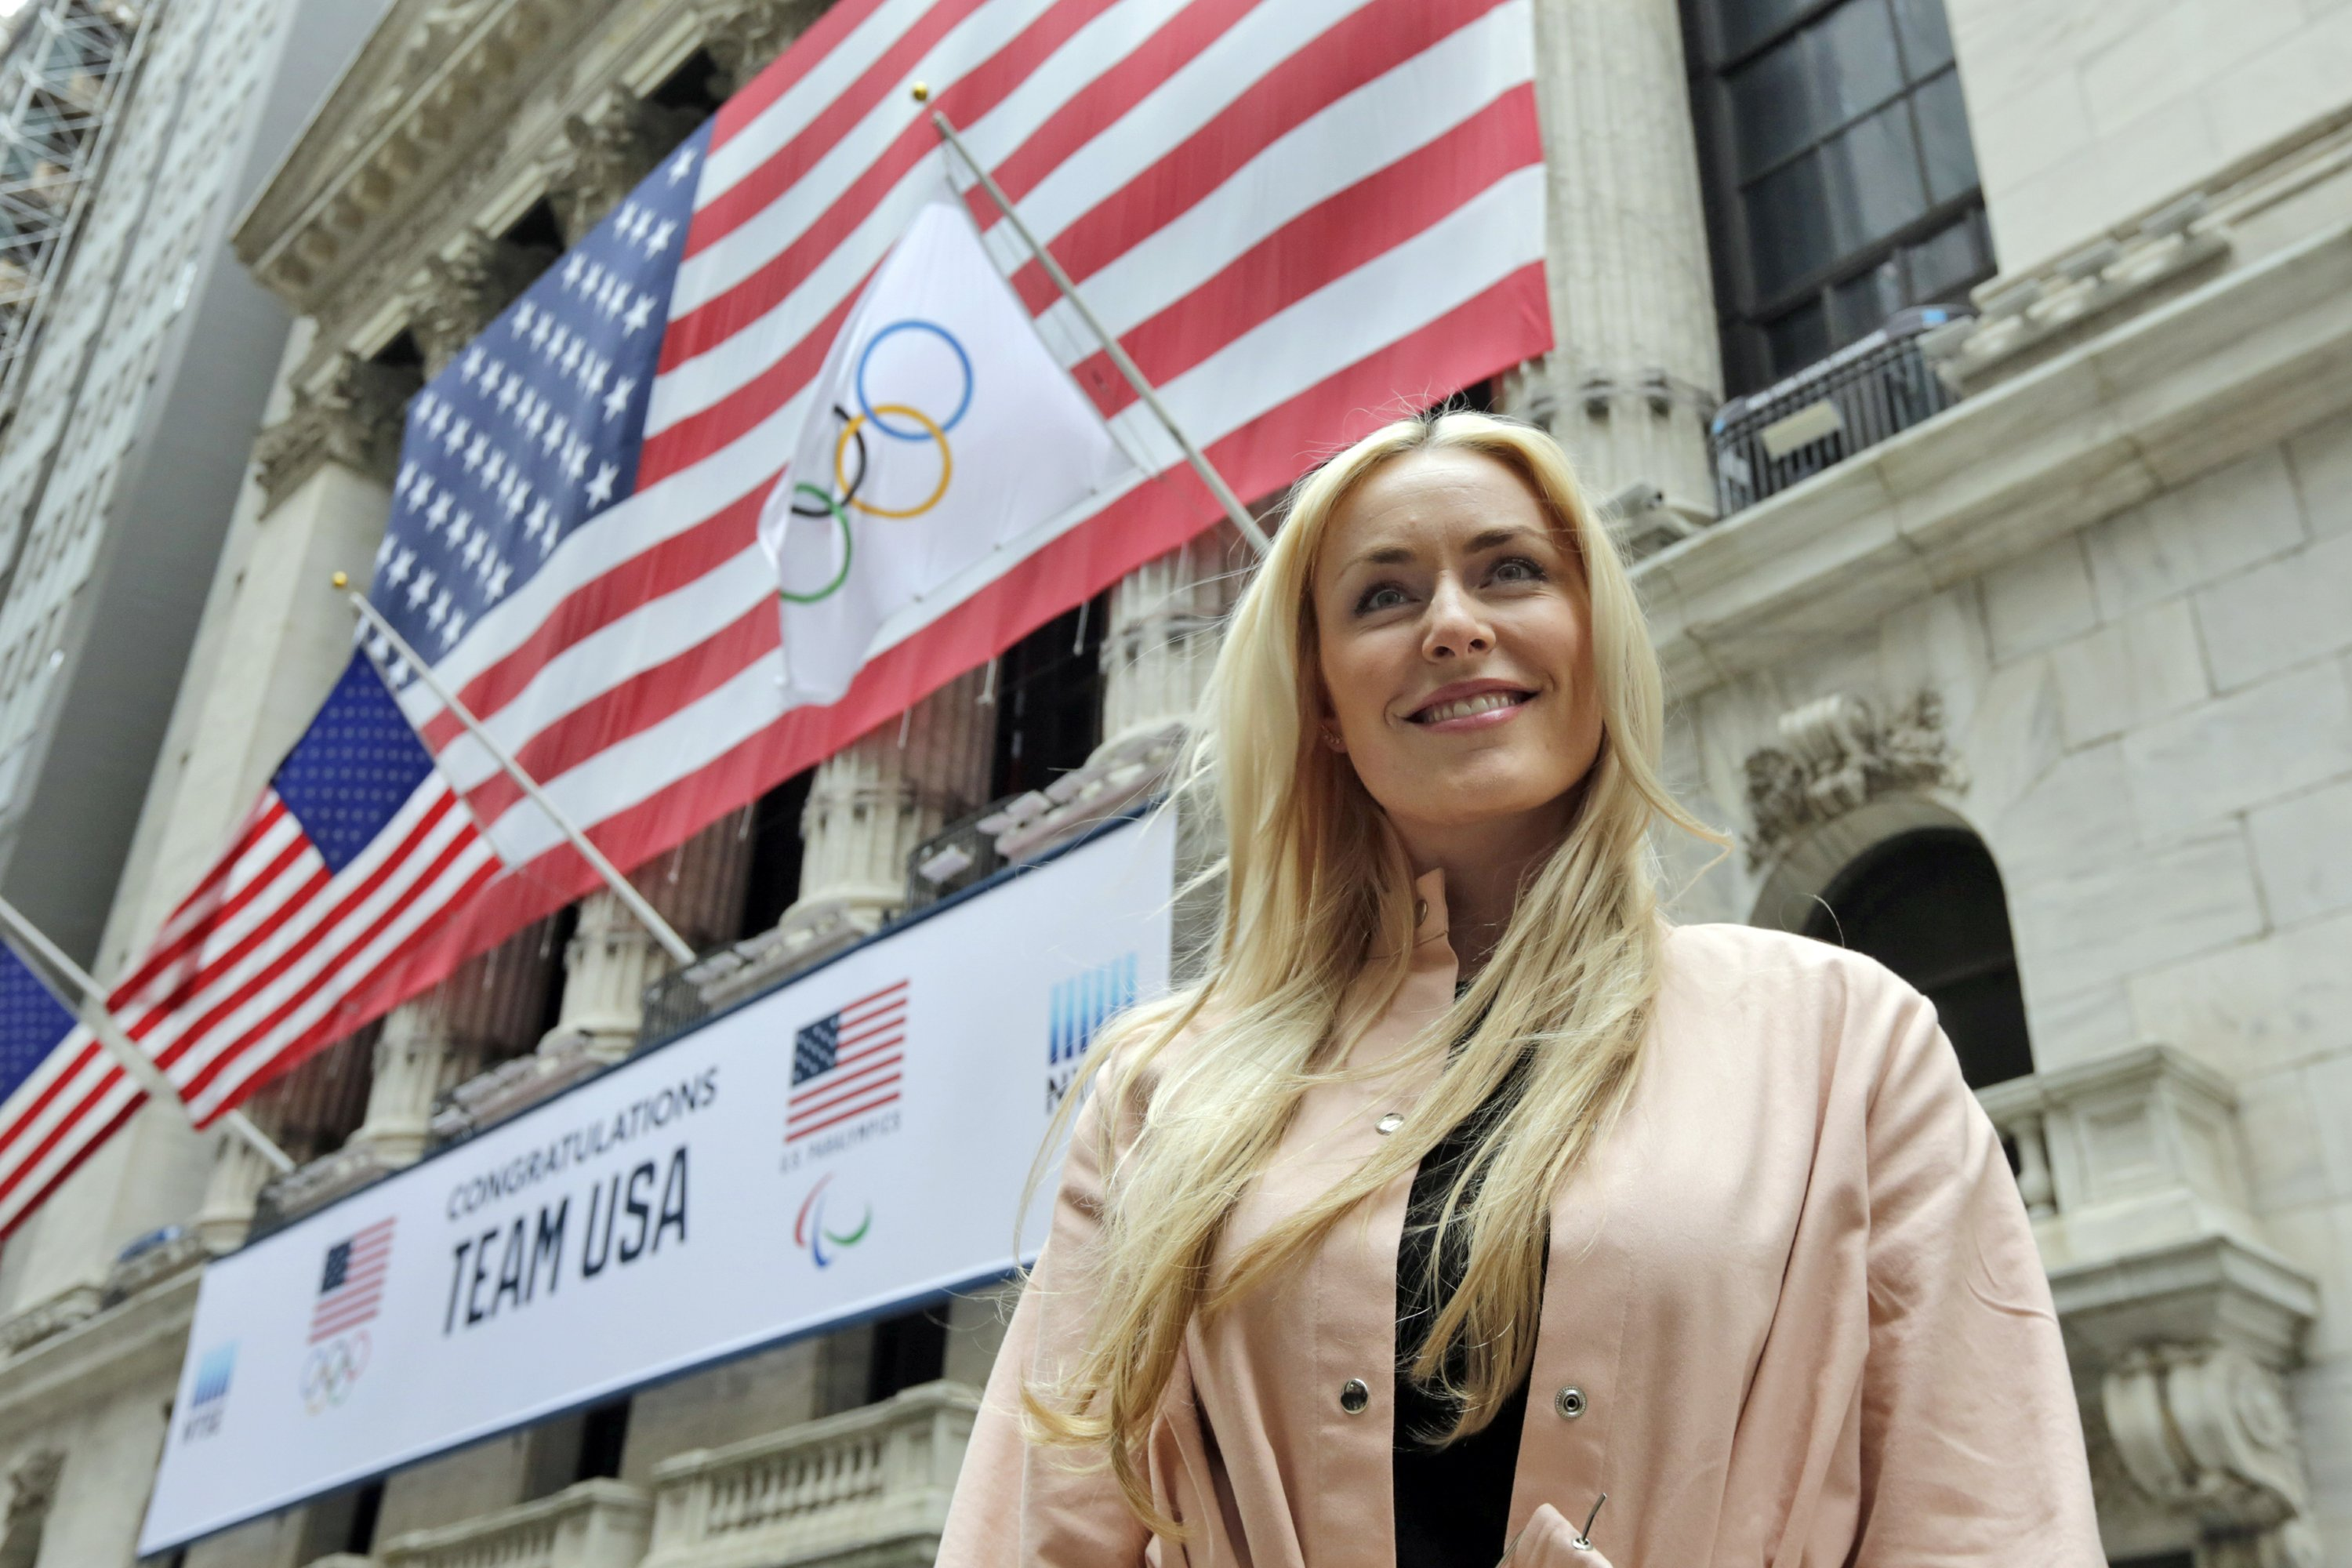 Ambitious Vonn to 'take on the world' after skiing career